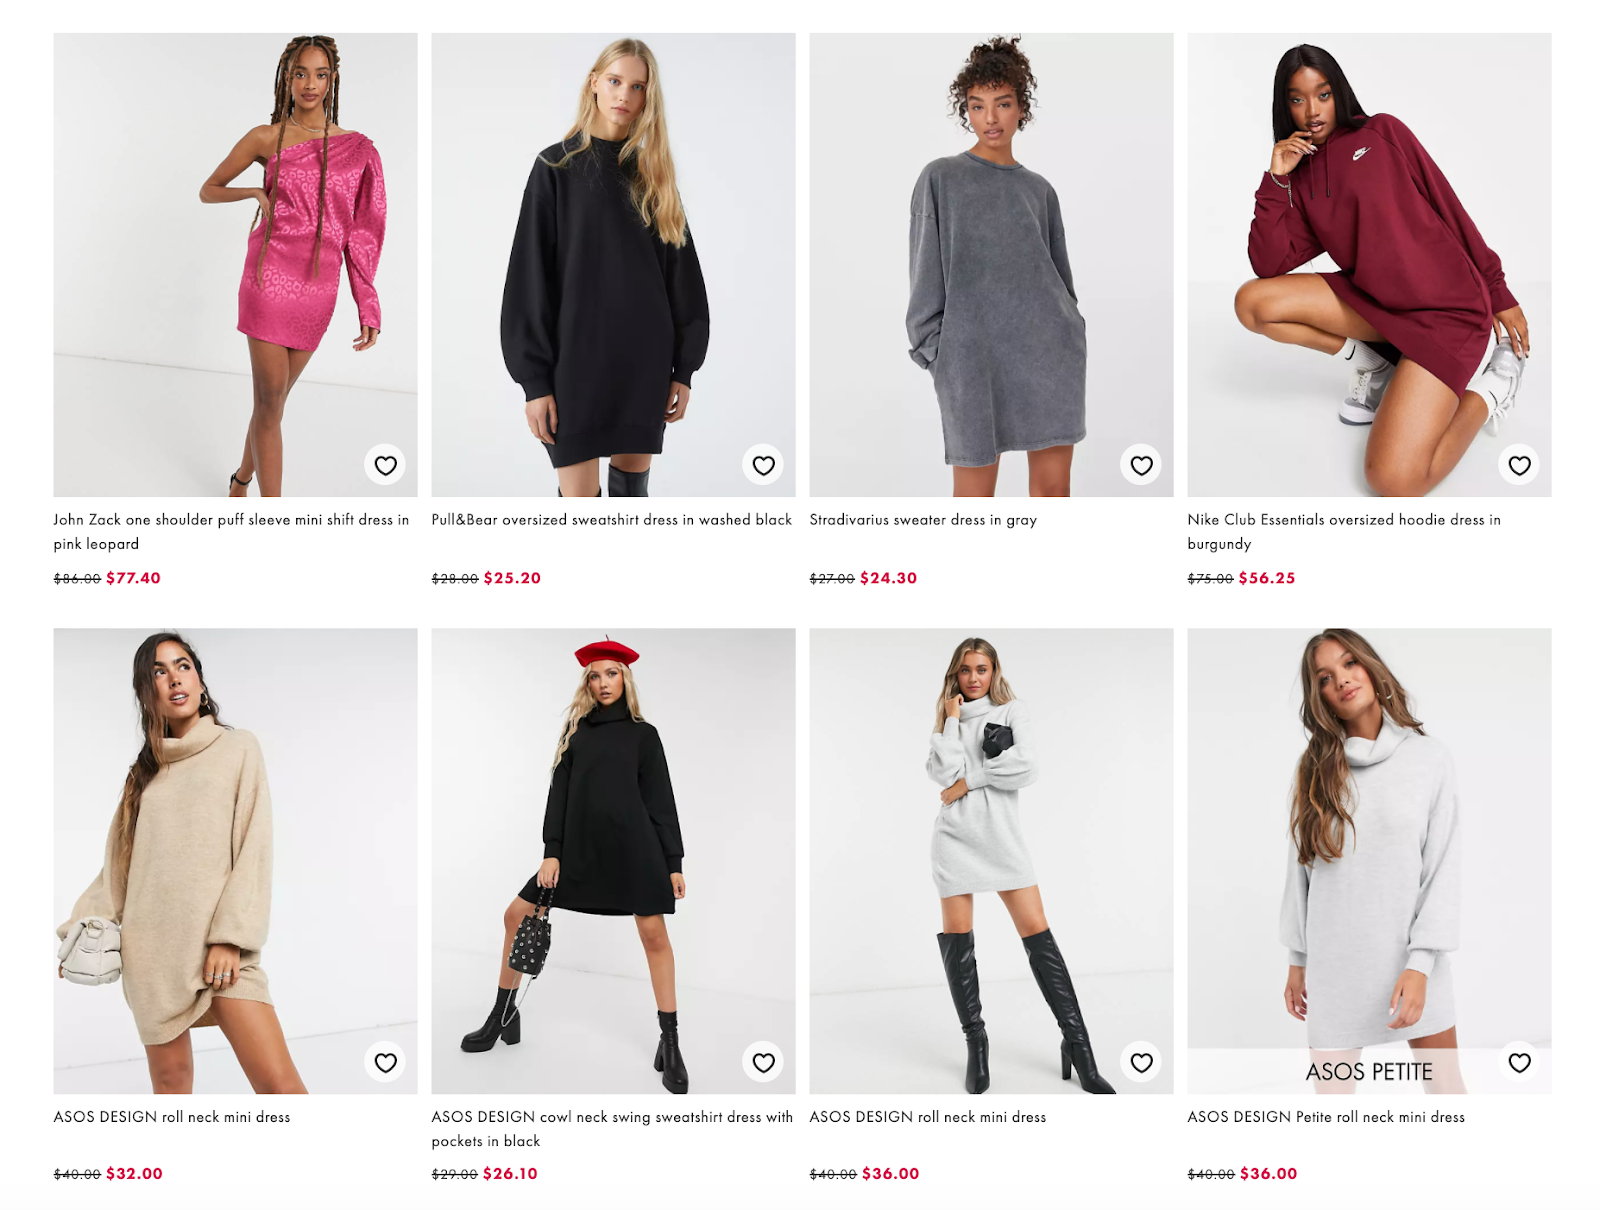 Asos product photography